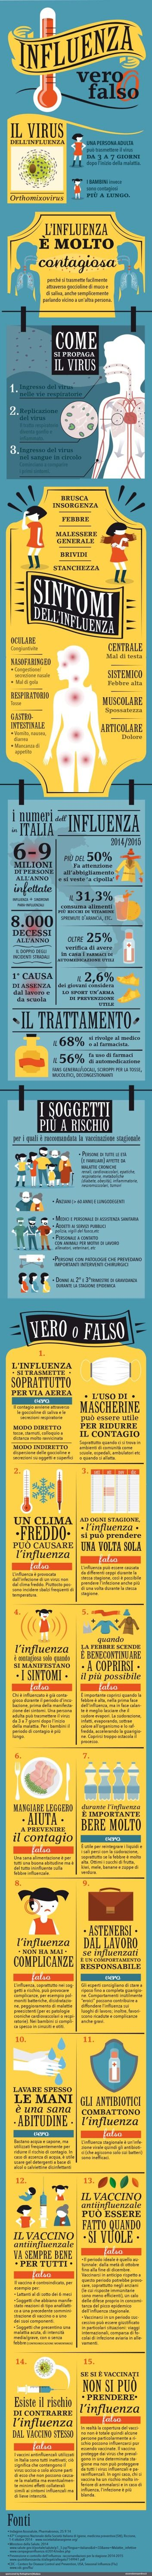 Influenza: vero o falso? per Esseredonnaonline.it by kleland studio di Alice Kle…